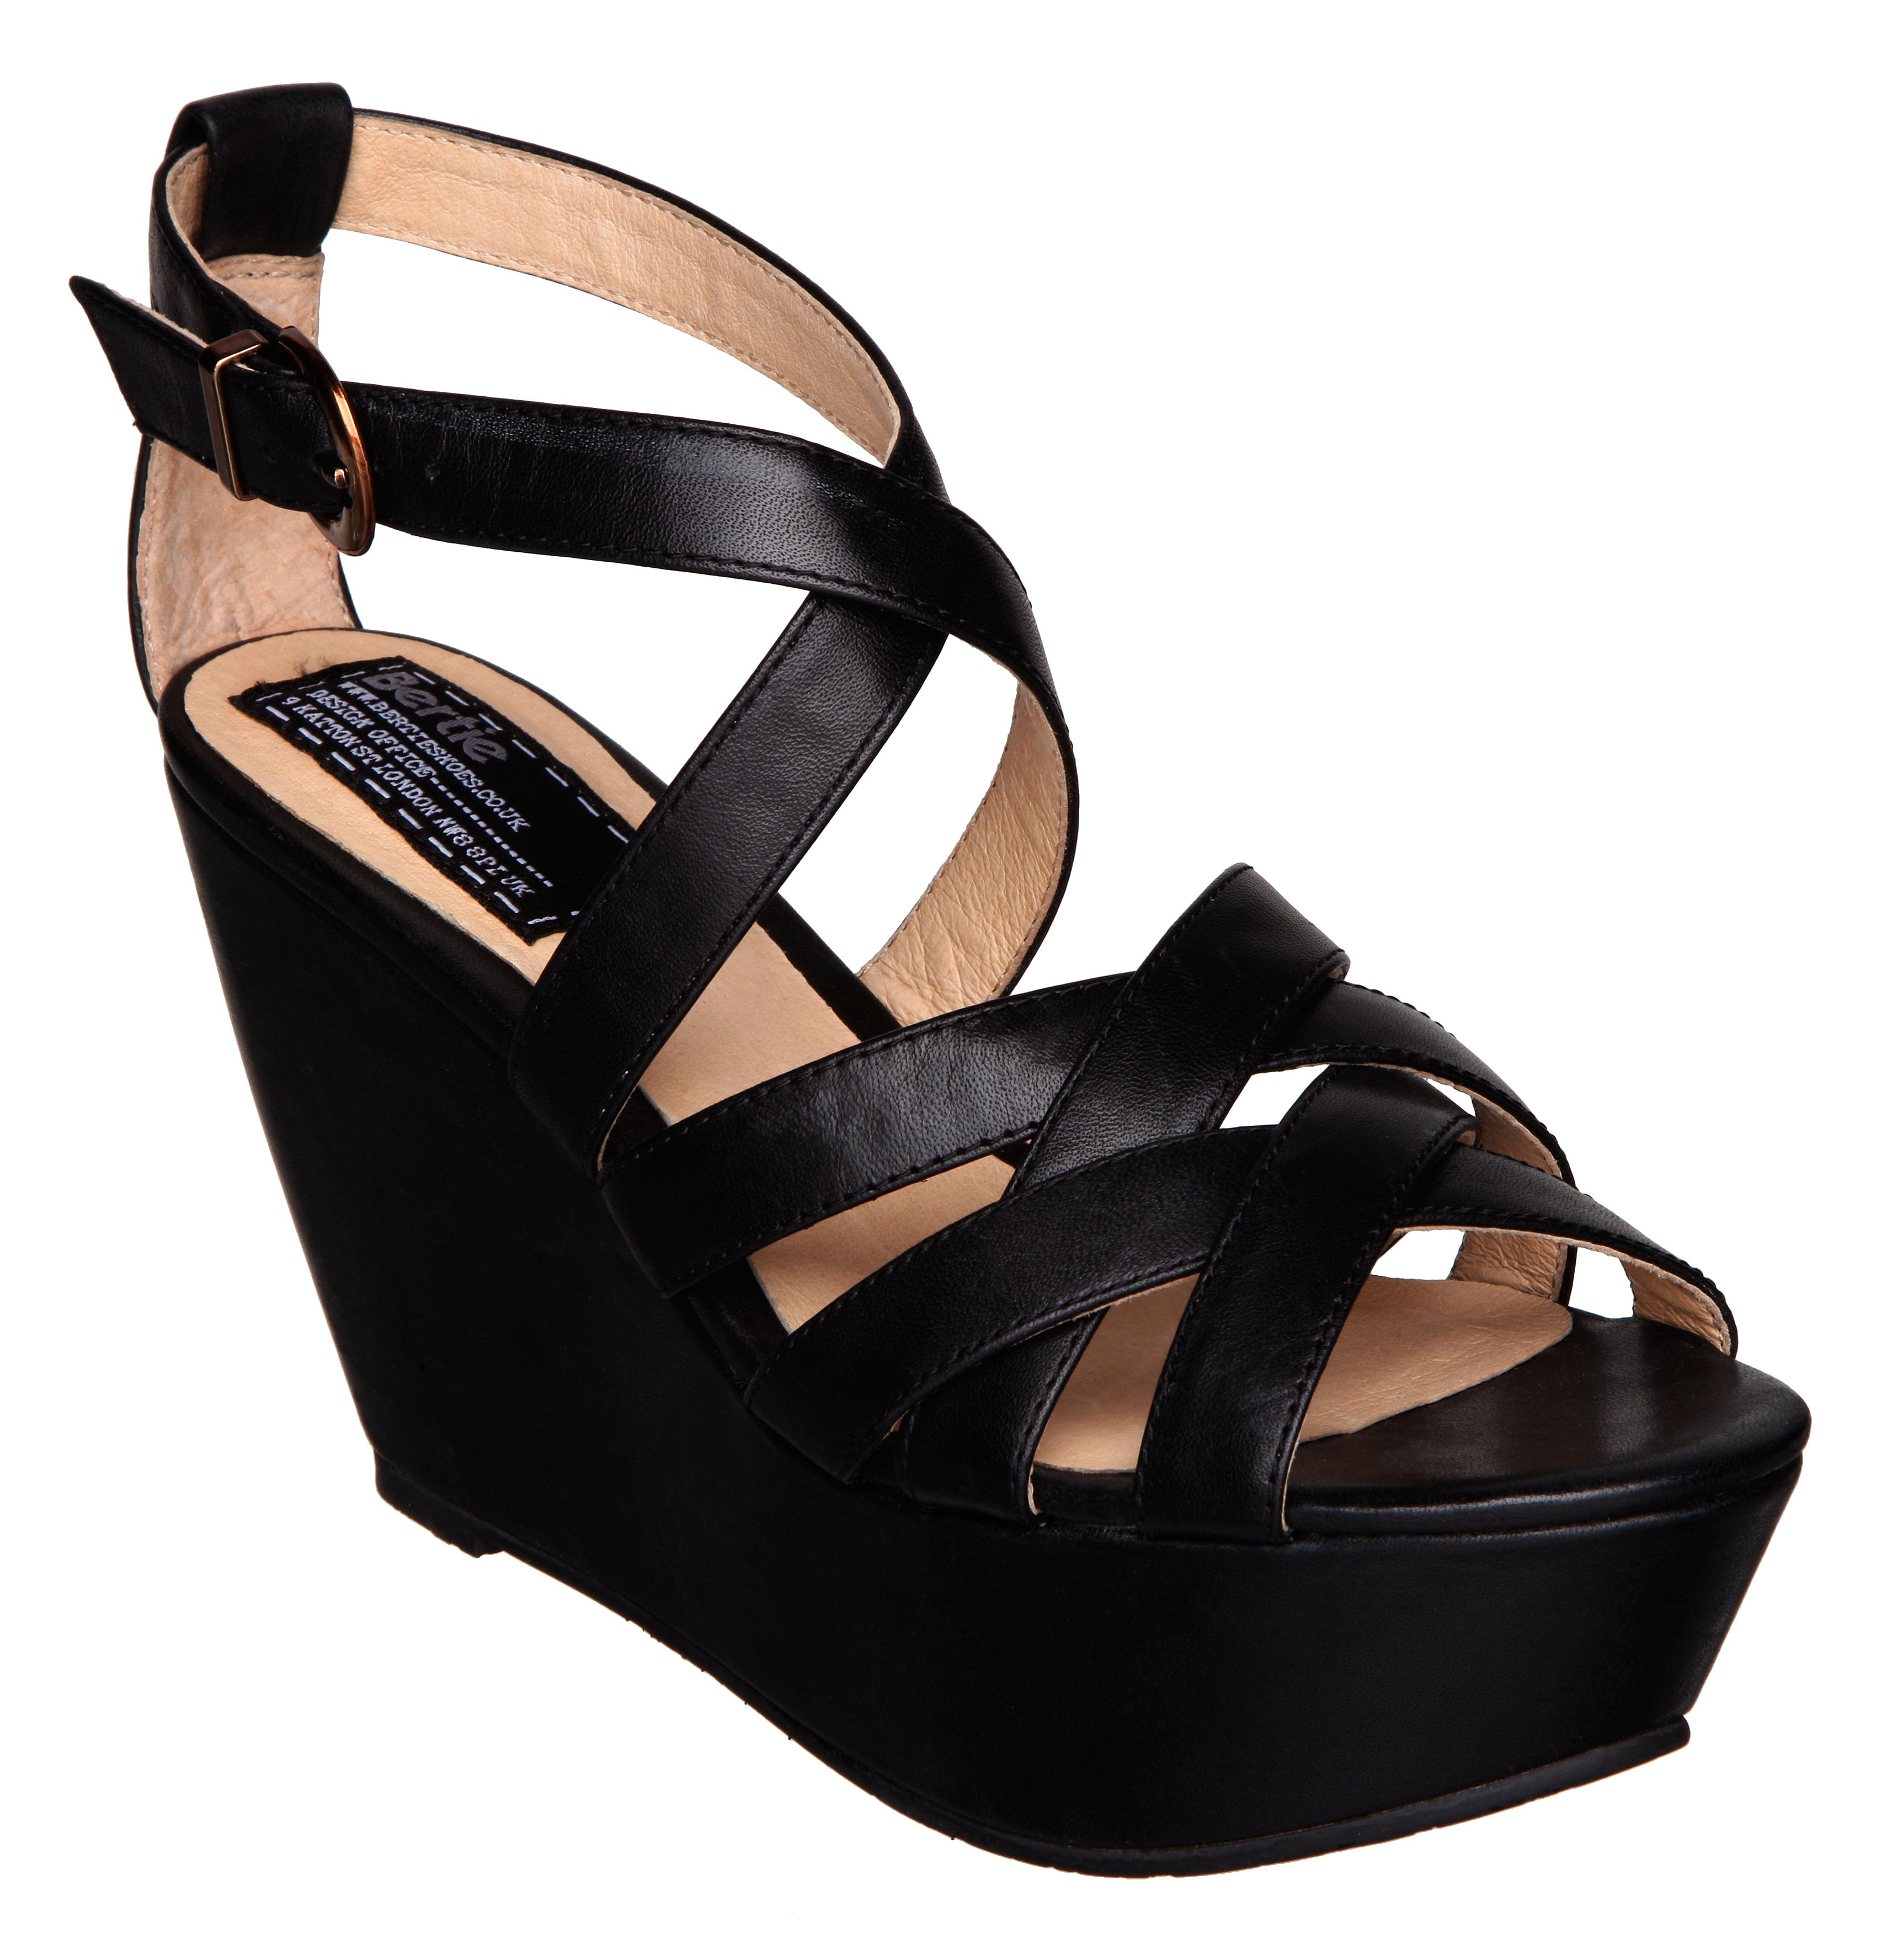 Ghianna multi strap geisha wedge sandals